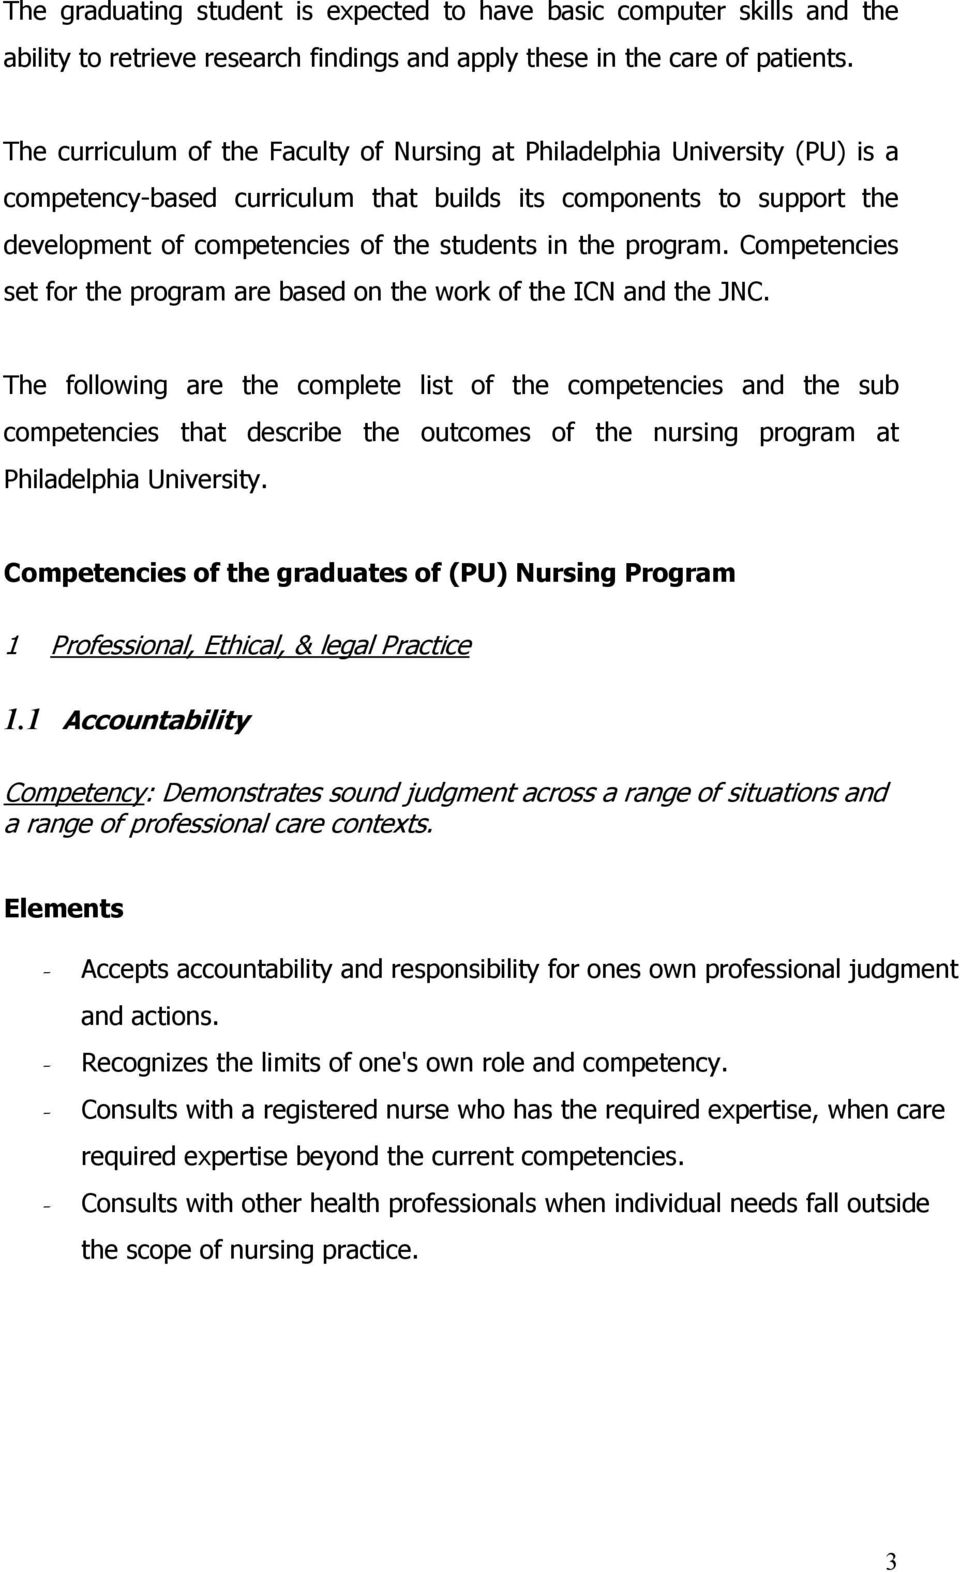 program. Competencies set for the program are based on the work of the ICN and the JNC.